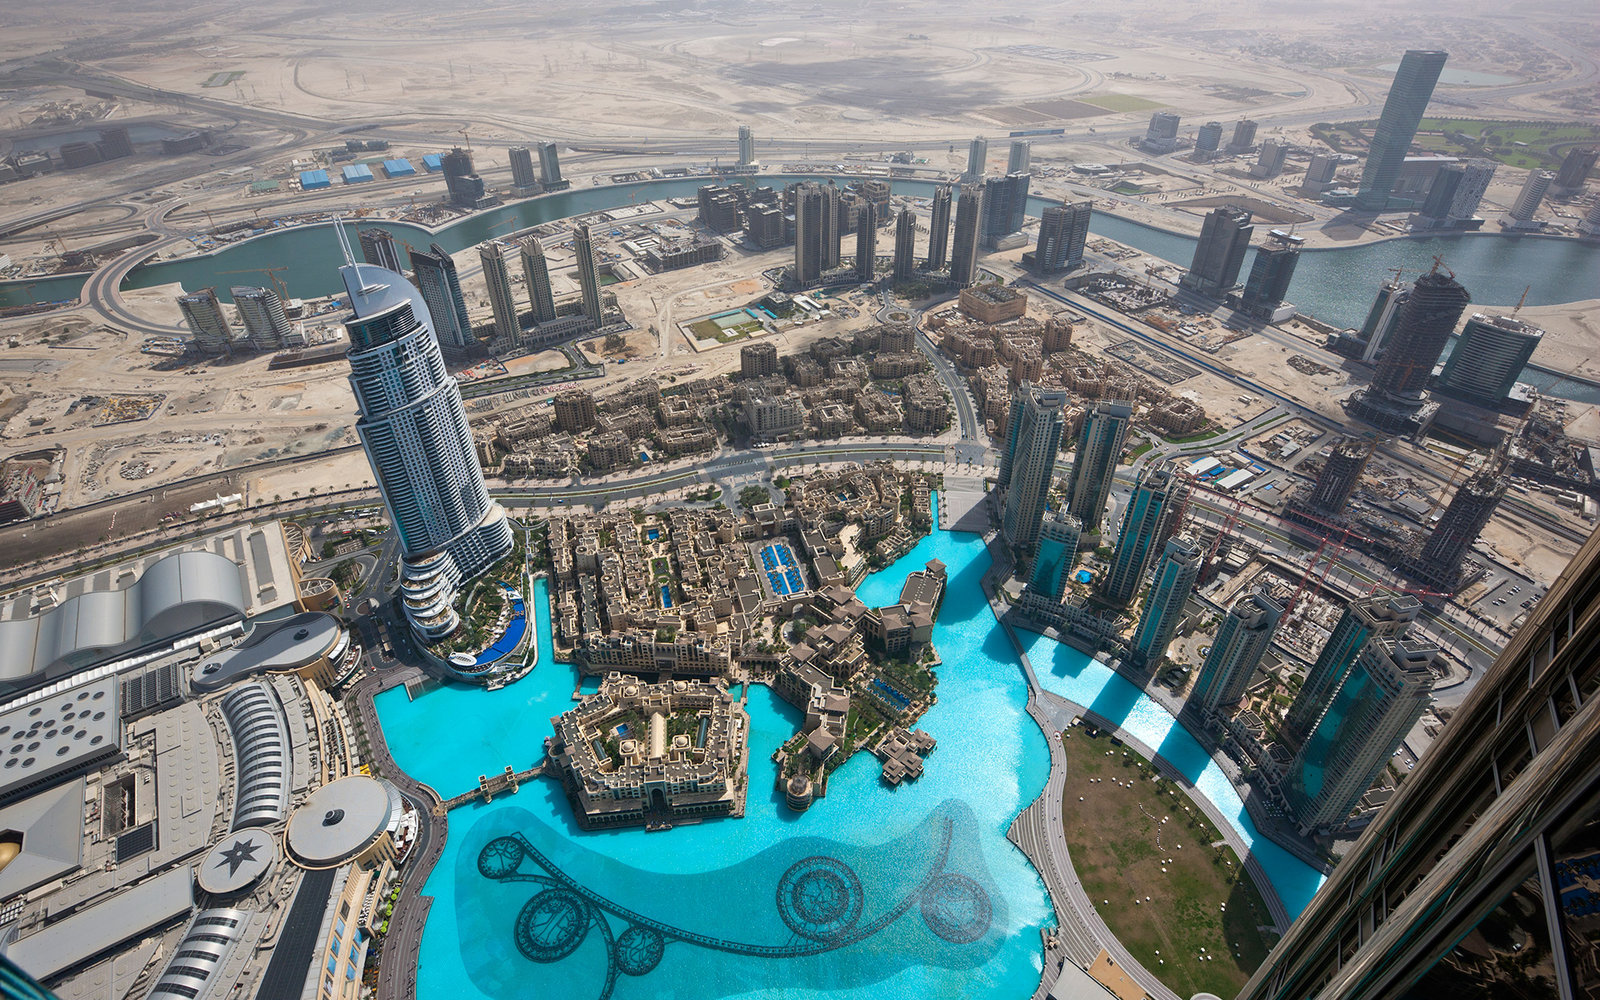 Aerial view of Dubai fountain